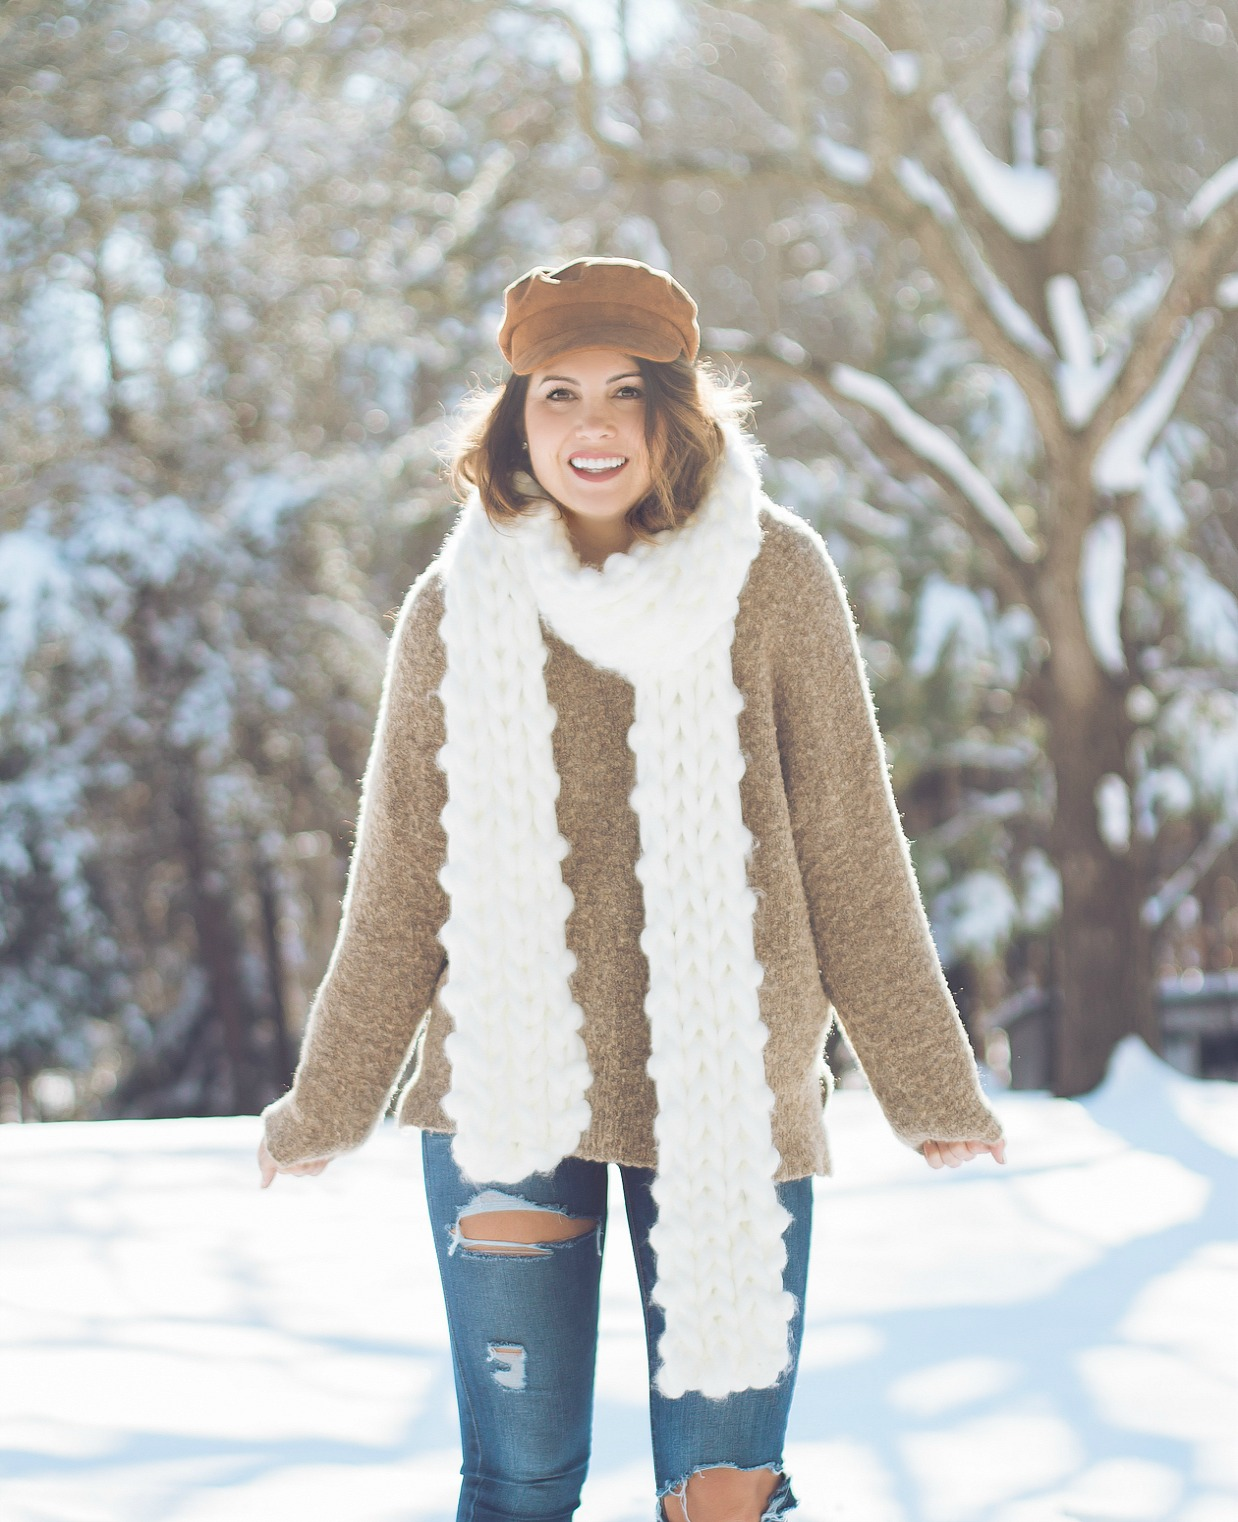 free people winter outfit, nc snow day, nc photographer, greensboro photographer, xo samantha brooke, life and messy hair, fashion blogger, free people, chunky knit scarf, ugg boots, winter fashion, sam brooke photo